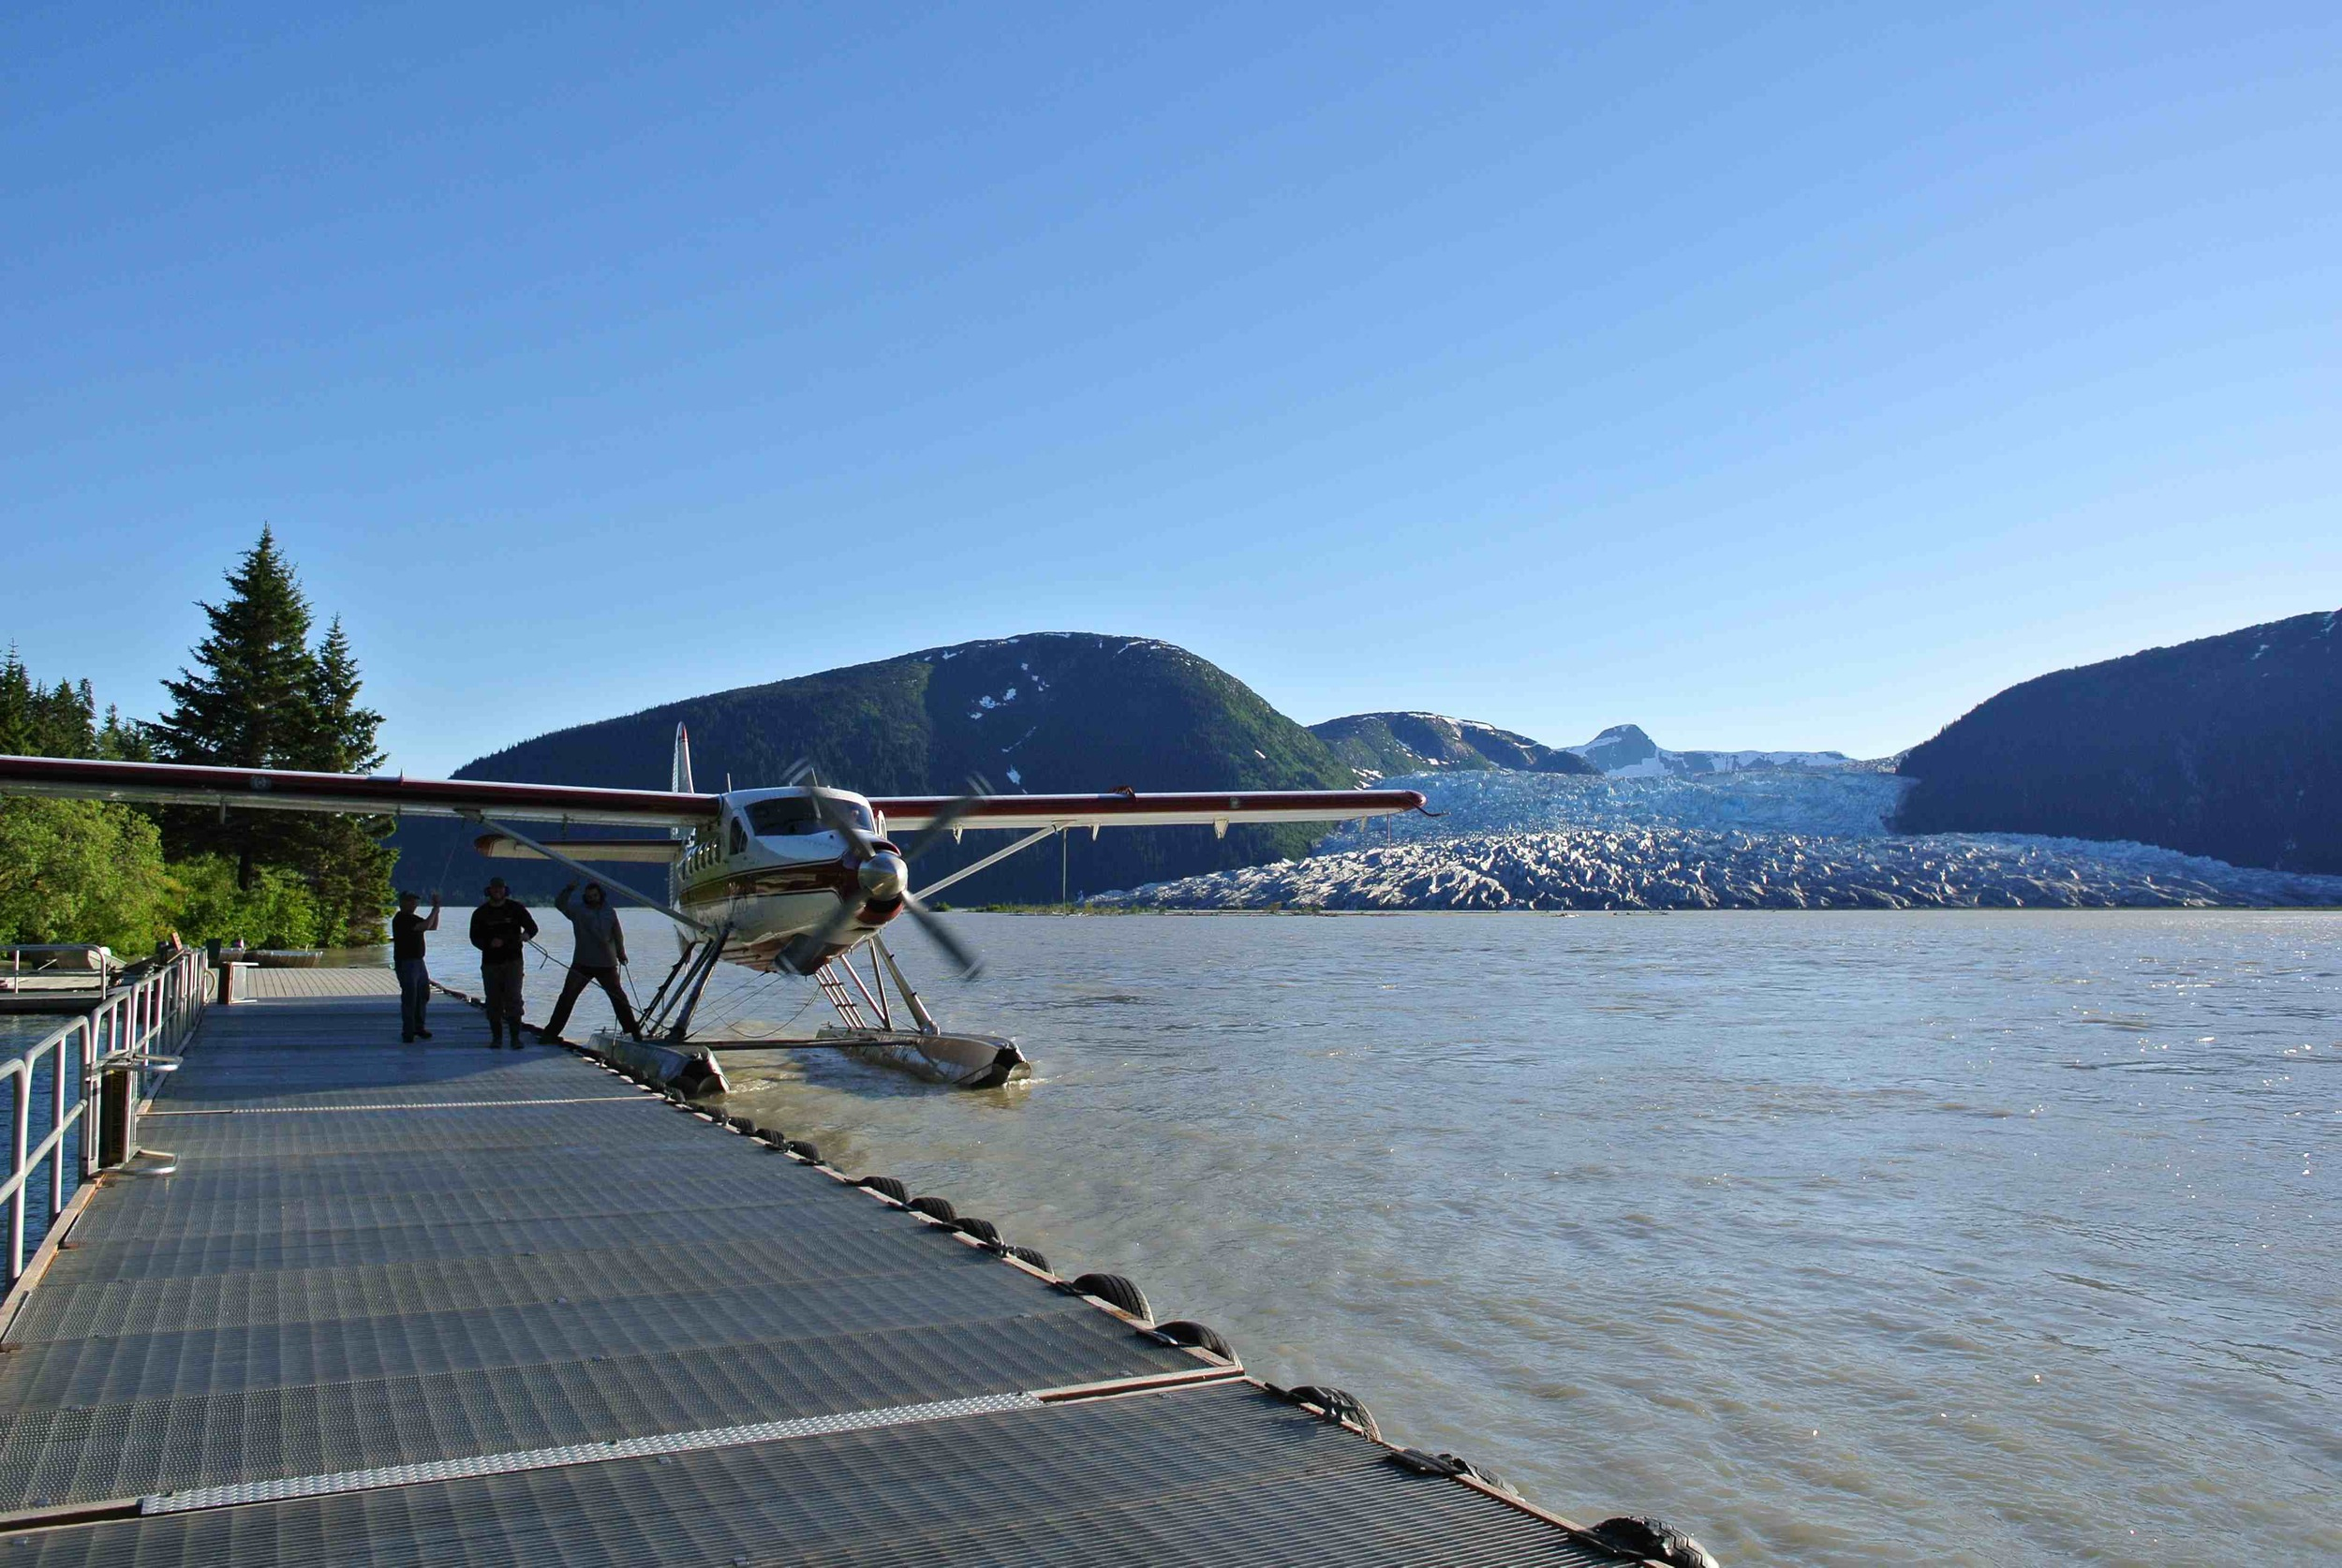 Airplane docking at Taku Lodge with Hole-in-the-Wall Glacier in the background. Photo: Salvatore G. Candela